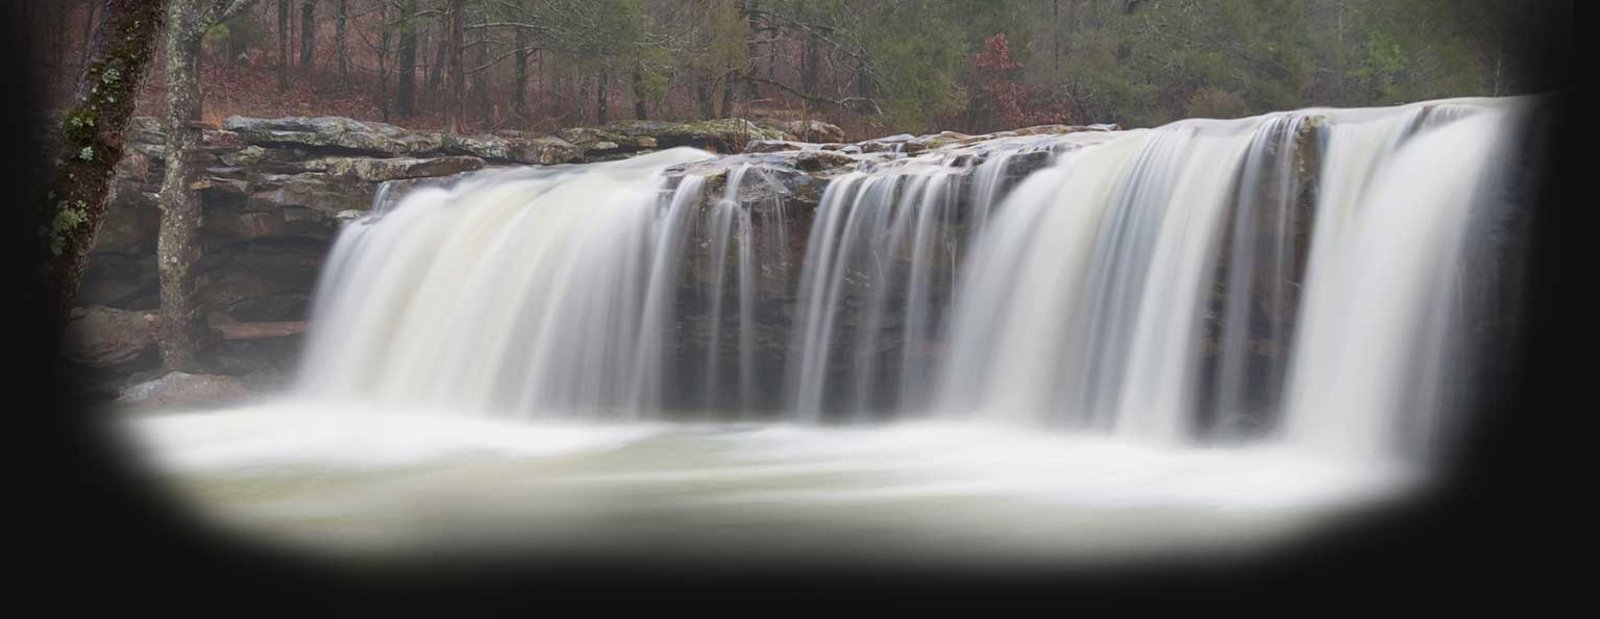 Image of a water fall from a river. - images provided by Jesse Hays